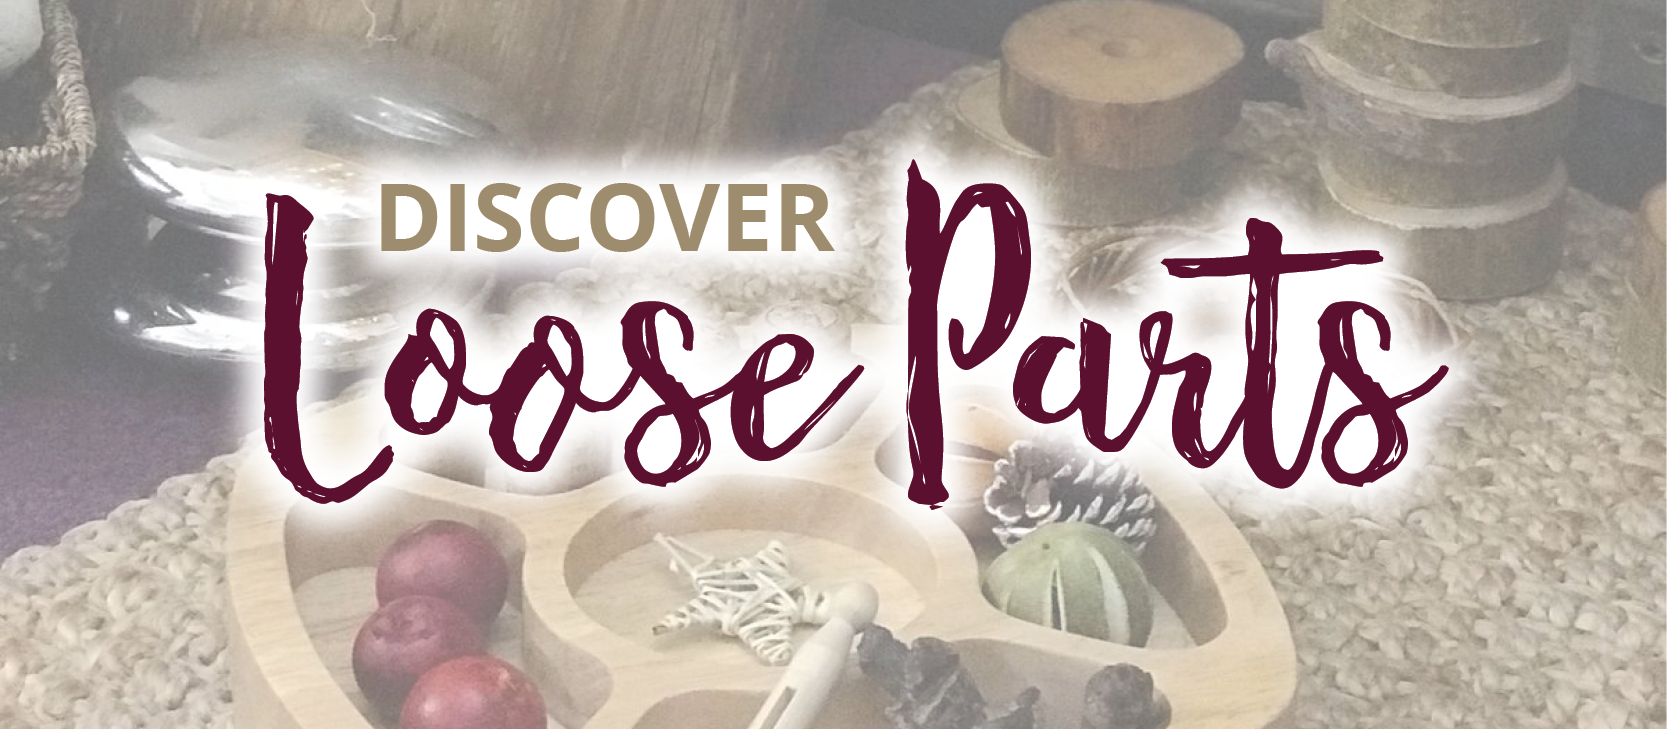 Northamptonshire Network - Discover Loose Parts - 25/09/2021